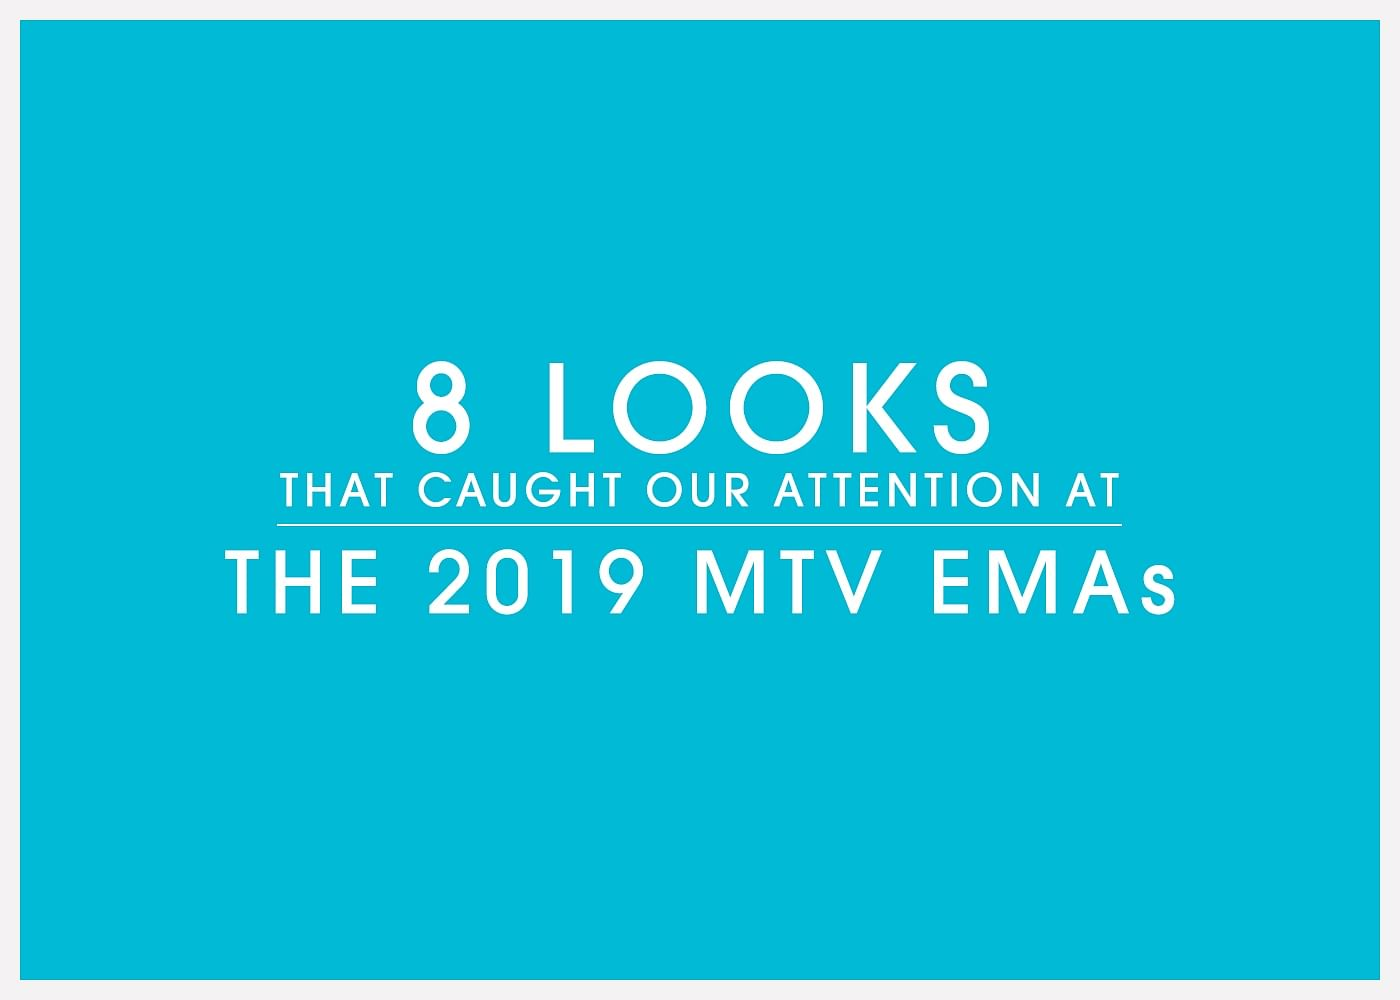 05NOV19 8 LOOKS THAT CAUGHT OUR ATTENTION AT THE 2019 MTV EMAs Hero no copy